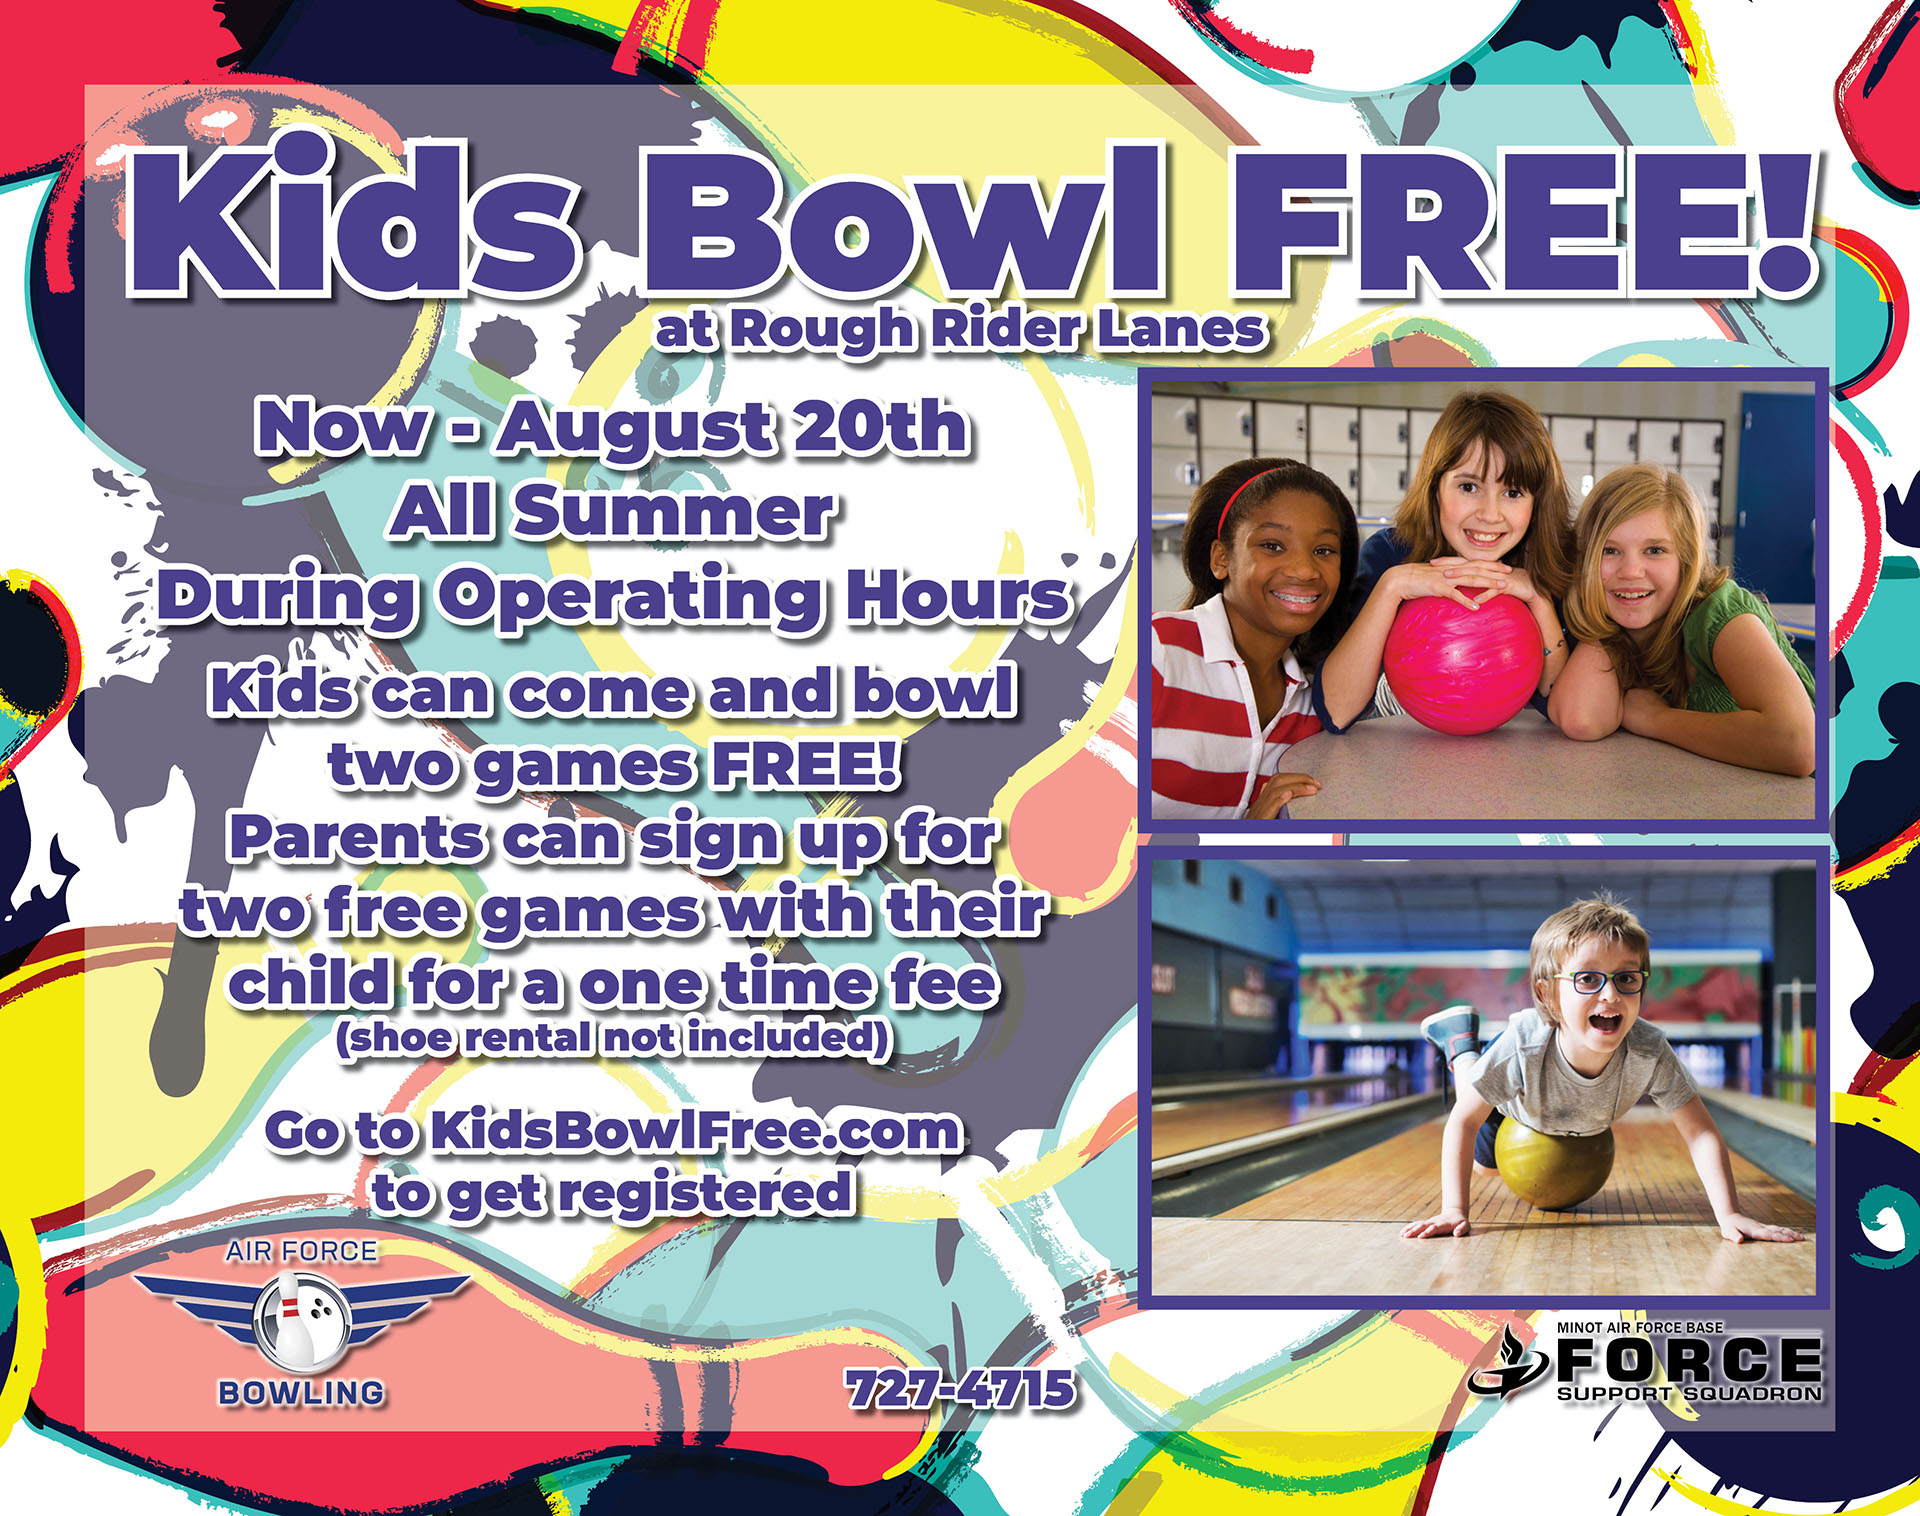 Kids Bowl Free Continues